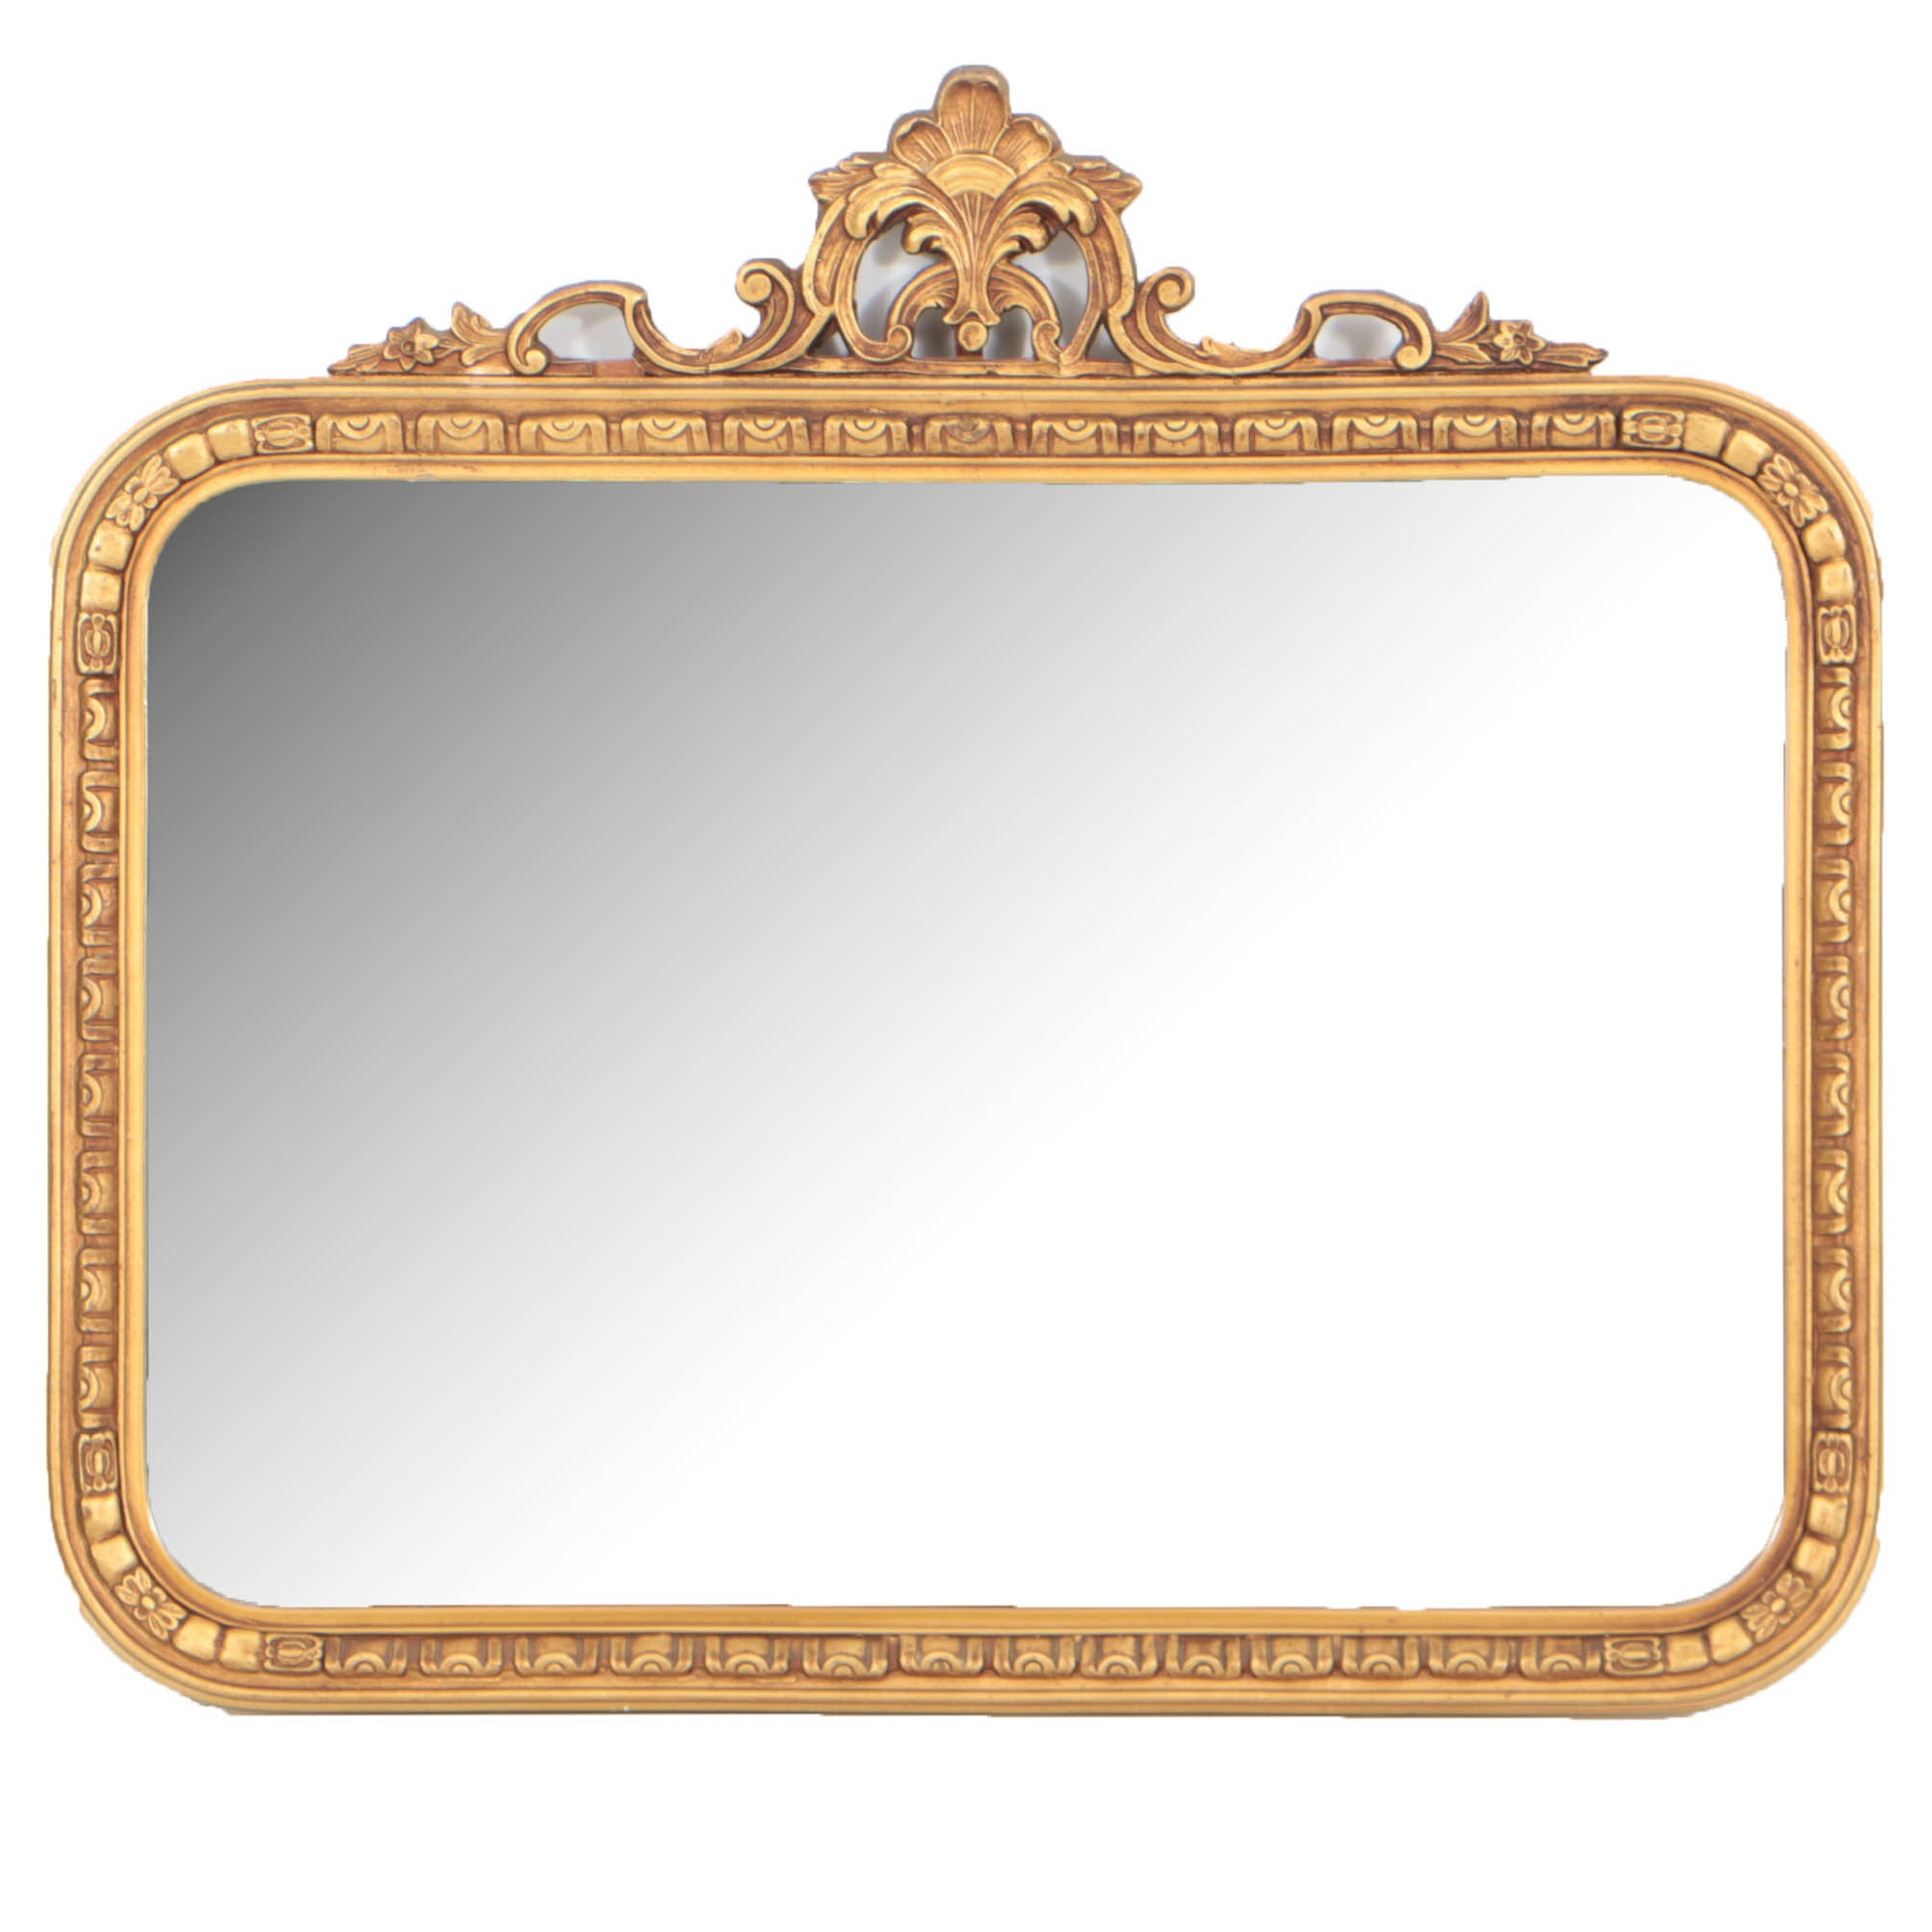 Rococo Style Giltwood Mirror by Borin Art Products of Chicago, 20th Century